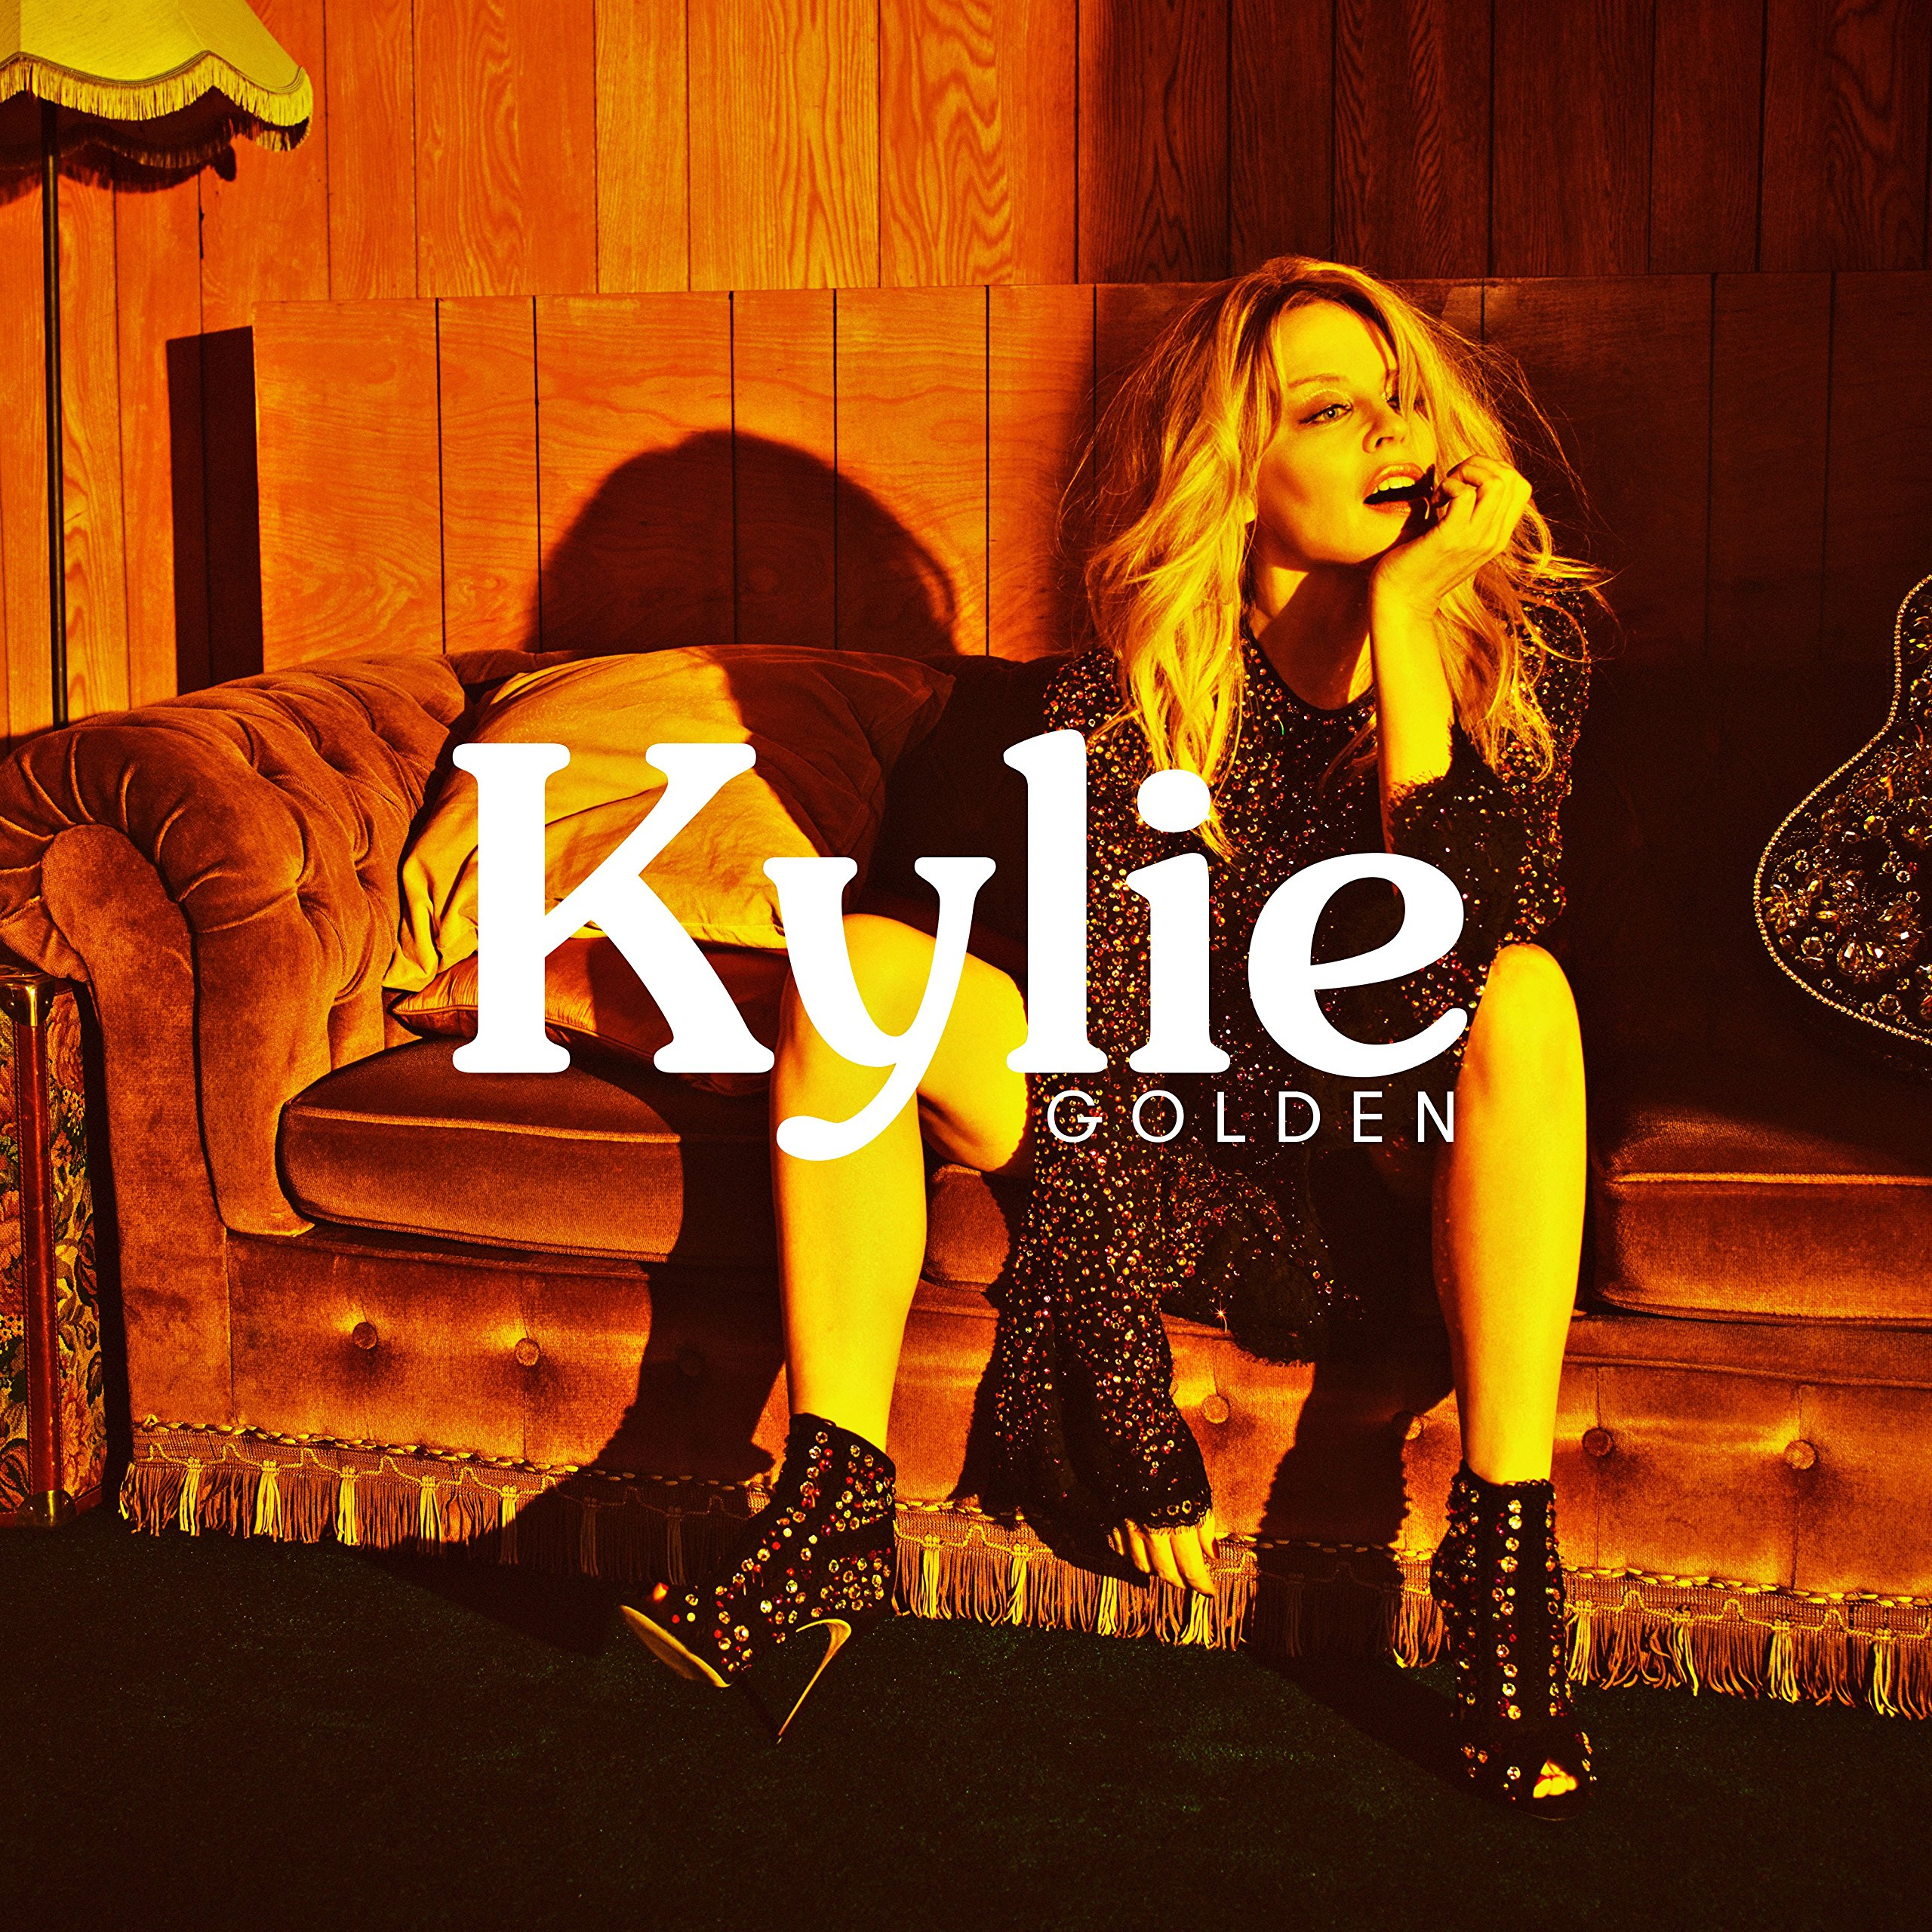 Golden: Kylie Minogue, Kylie Minogue: Amazon.es: Música